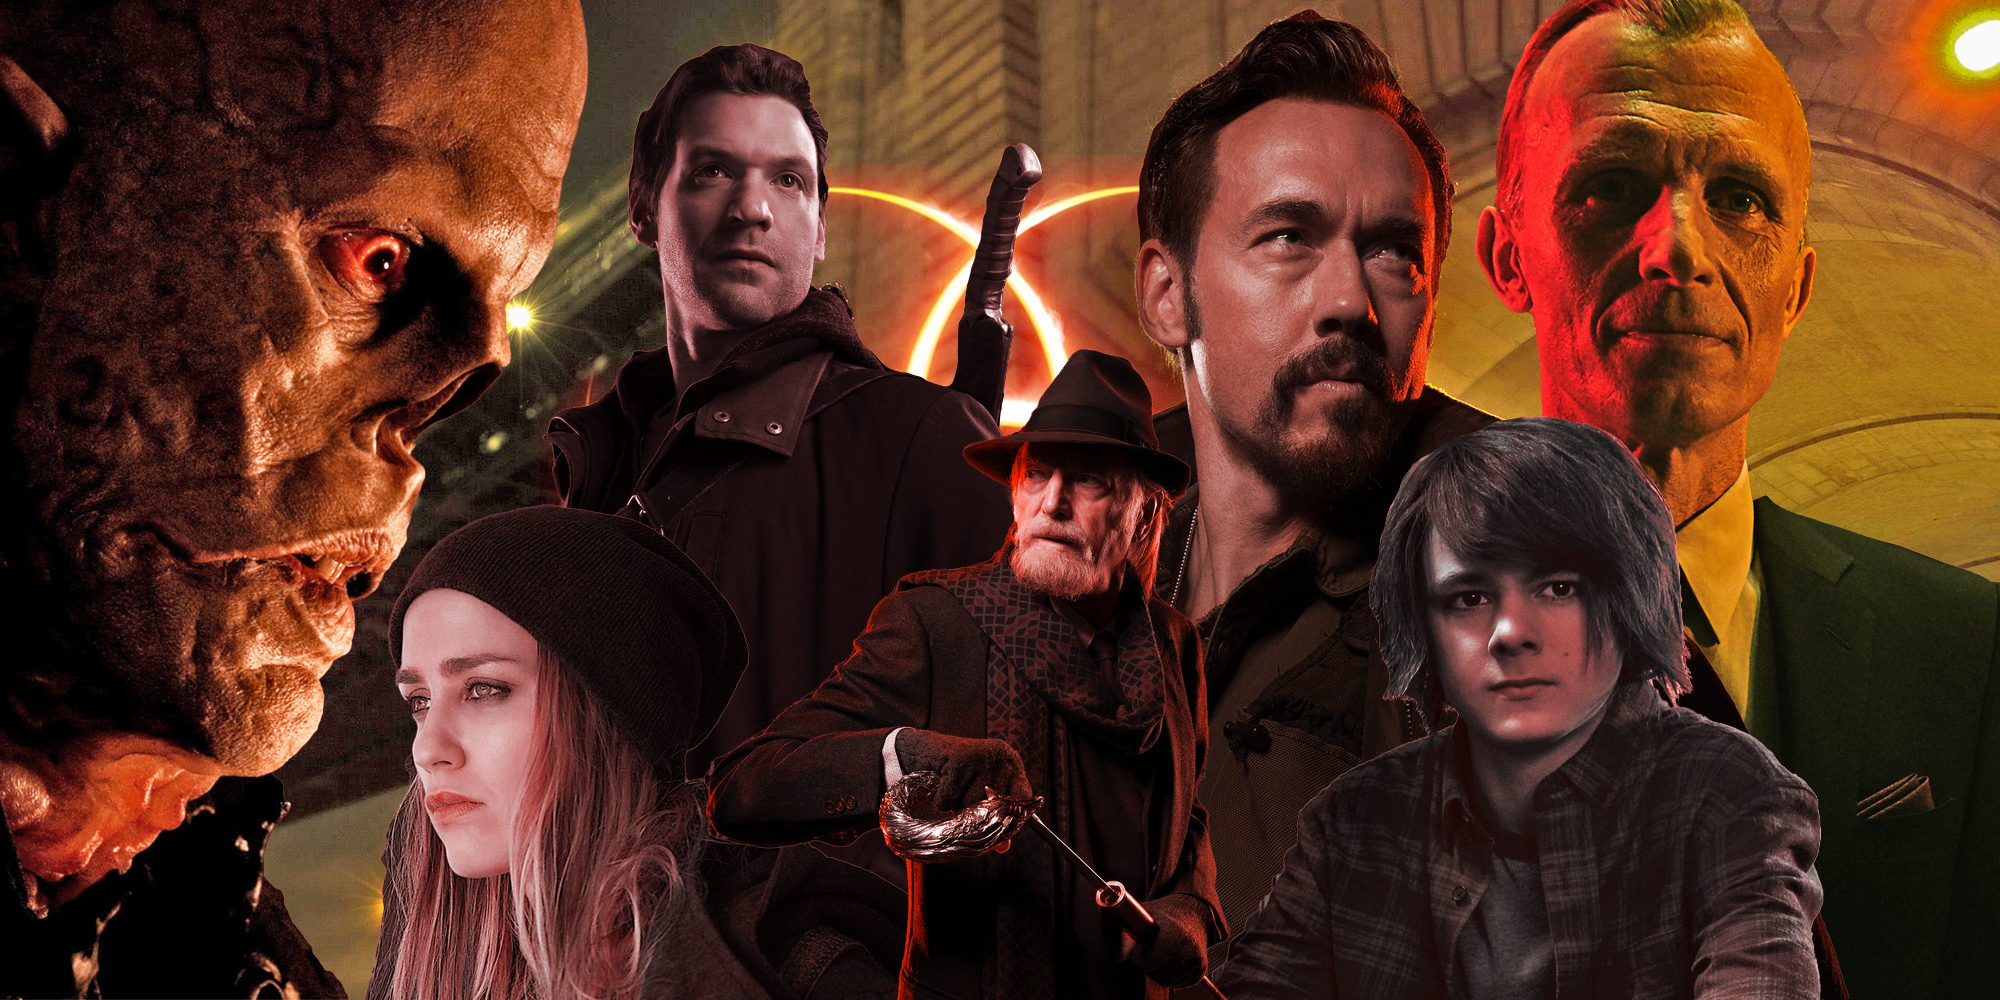 The Strain Cast